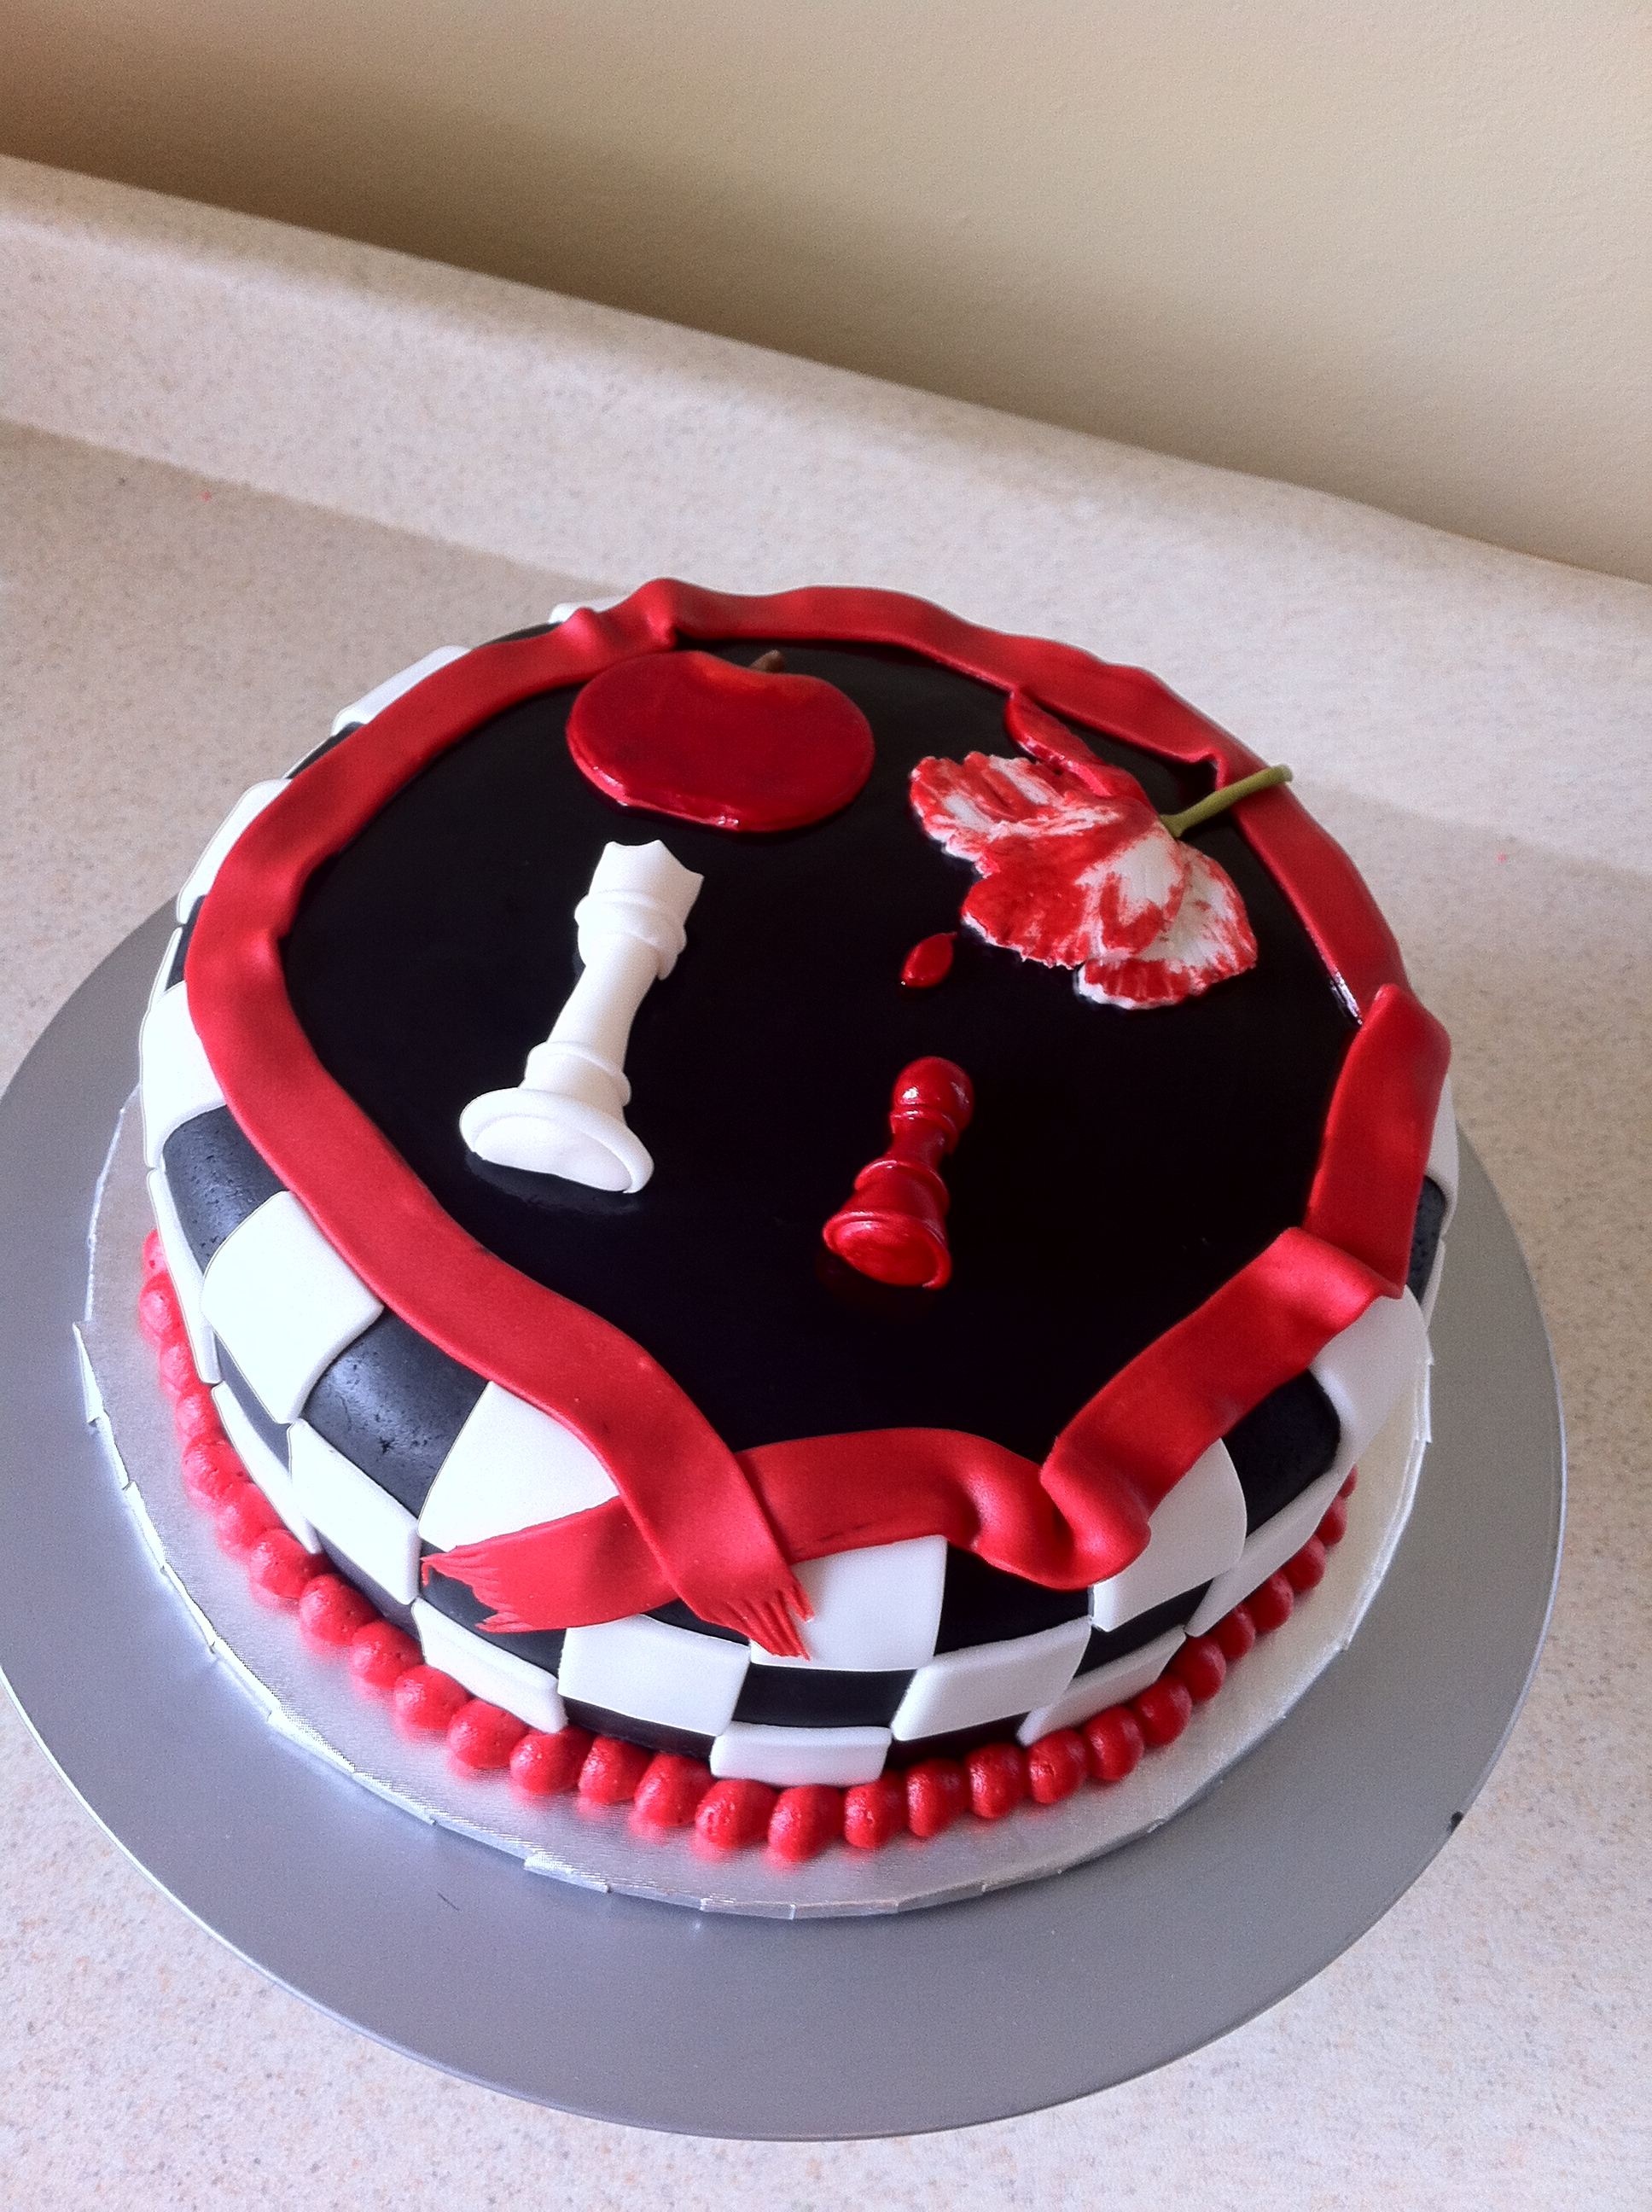 Stupendous Twilight Birthday Cake Lolos Cakes Sweets Funny Birthday Cards Online Overcheapnameinfo